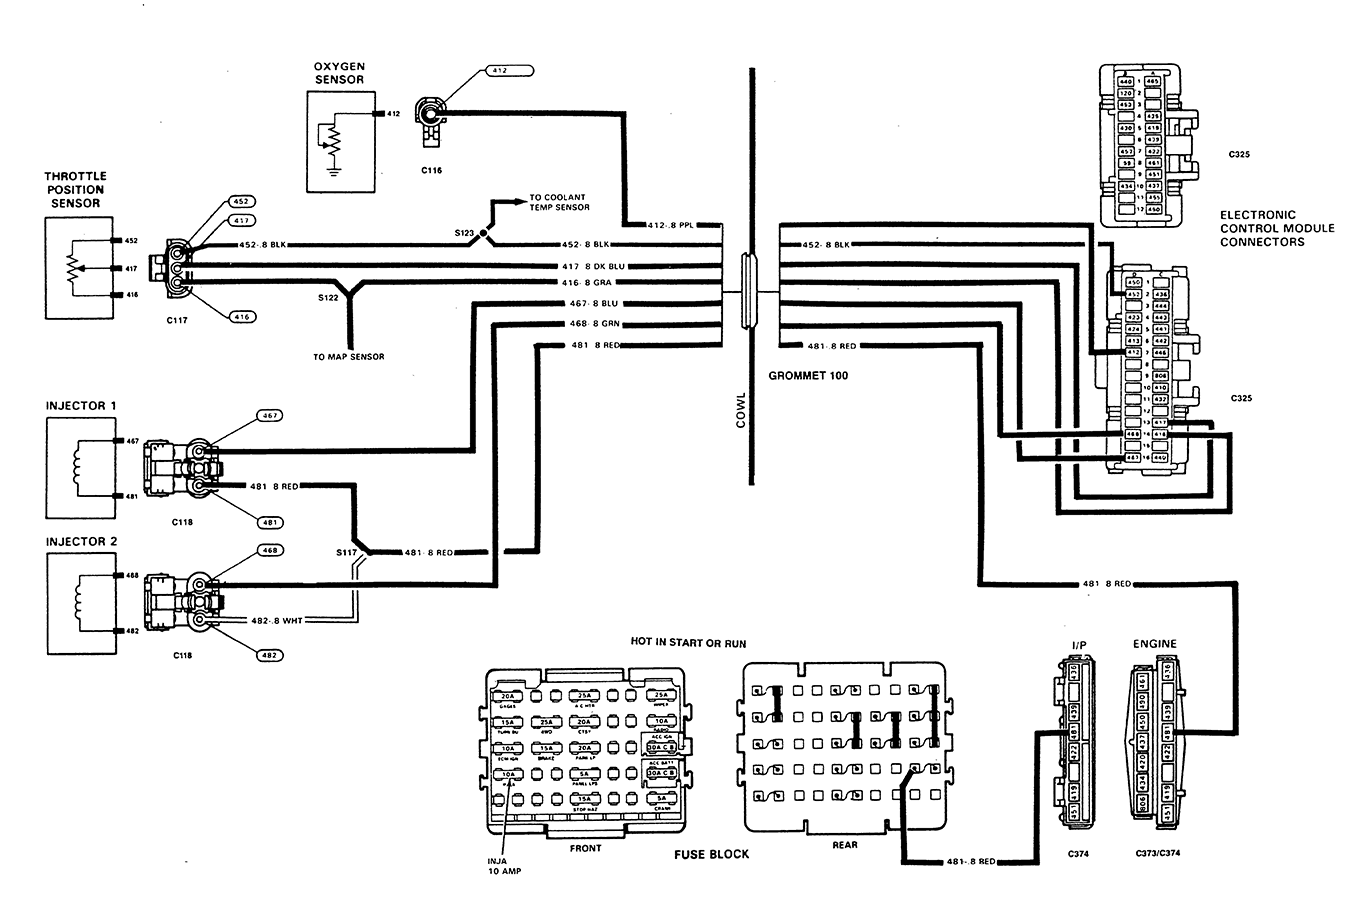 where can i find an oxygen sensor wiring diagram for a 1989